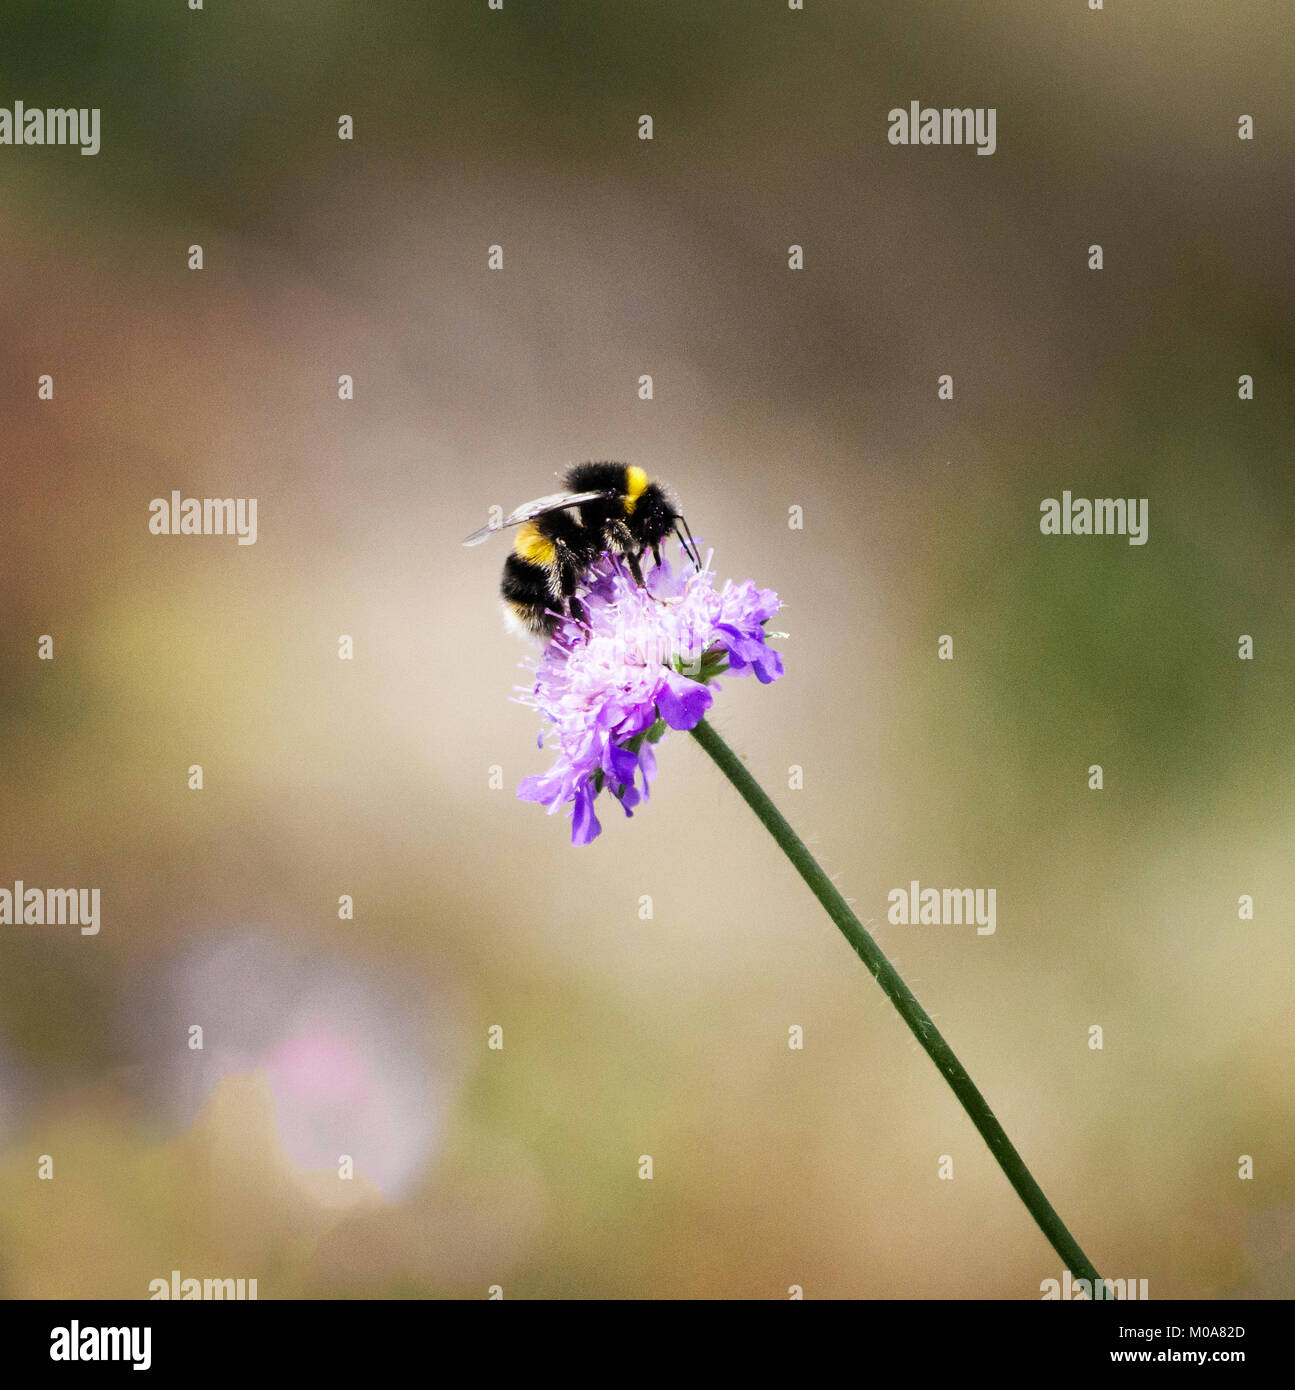 Buff tailed bumblebee feeds on giant scabious flower, London, UK - Stock Image